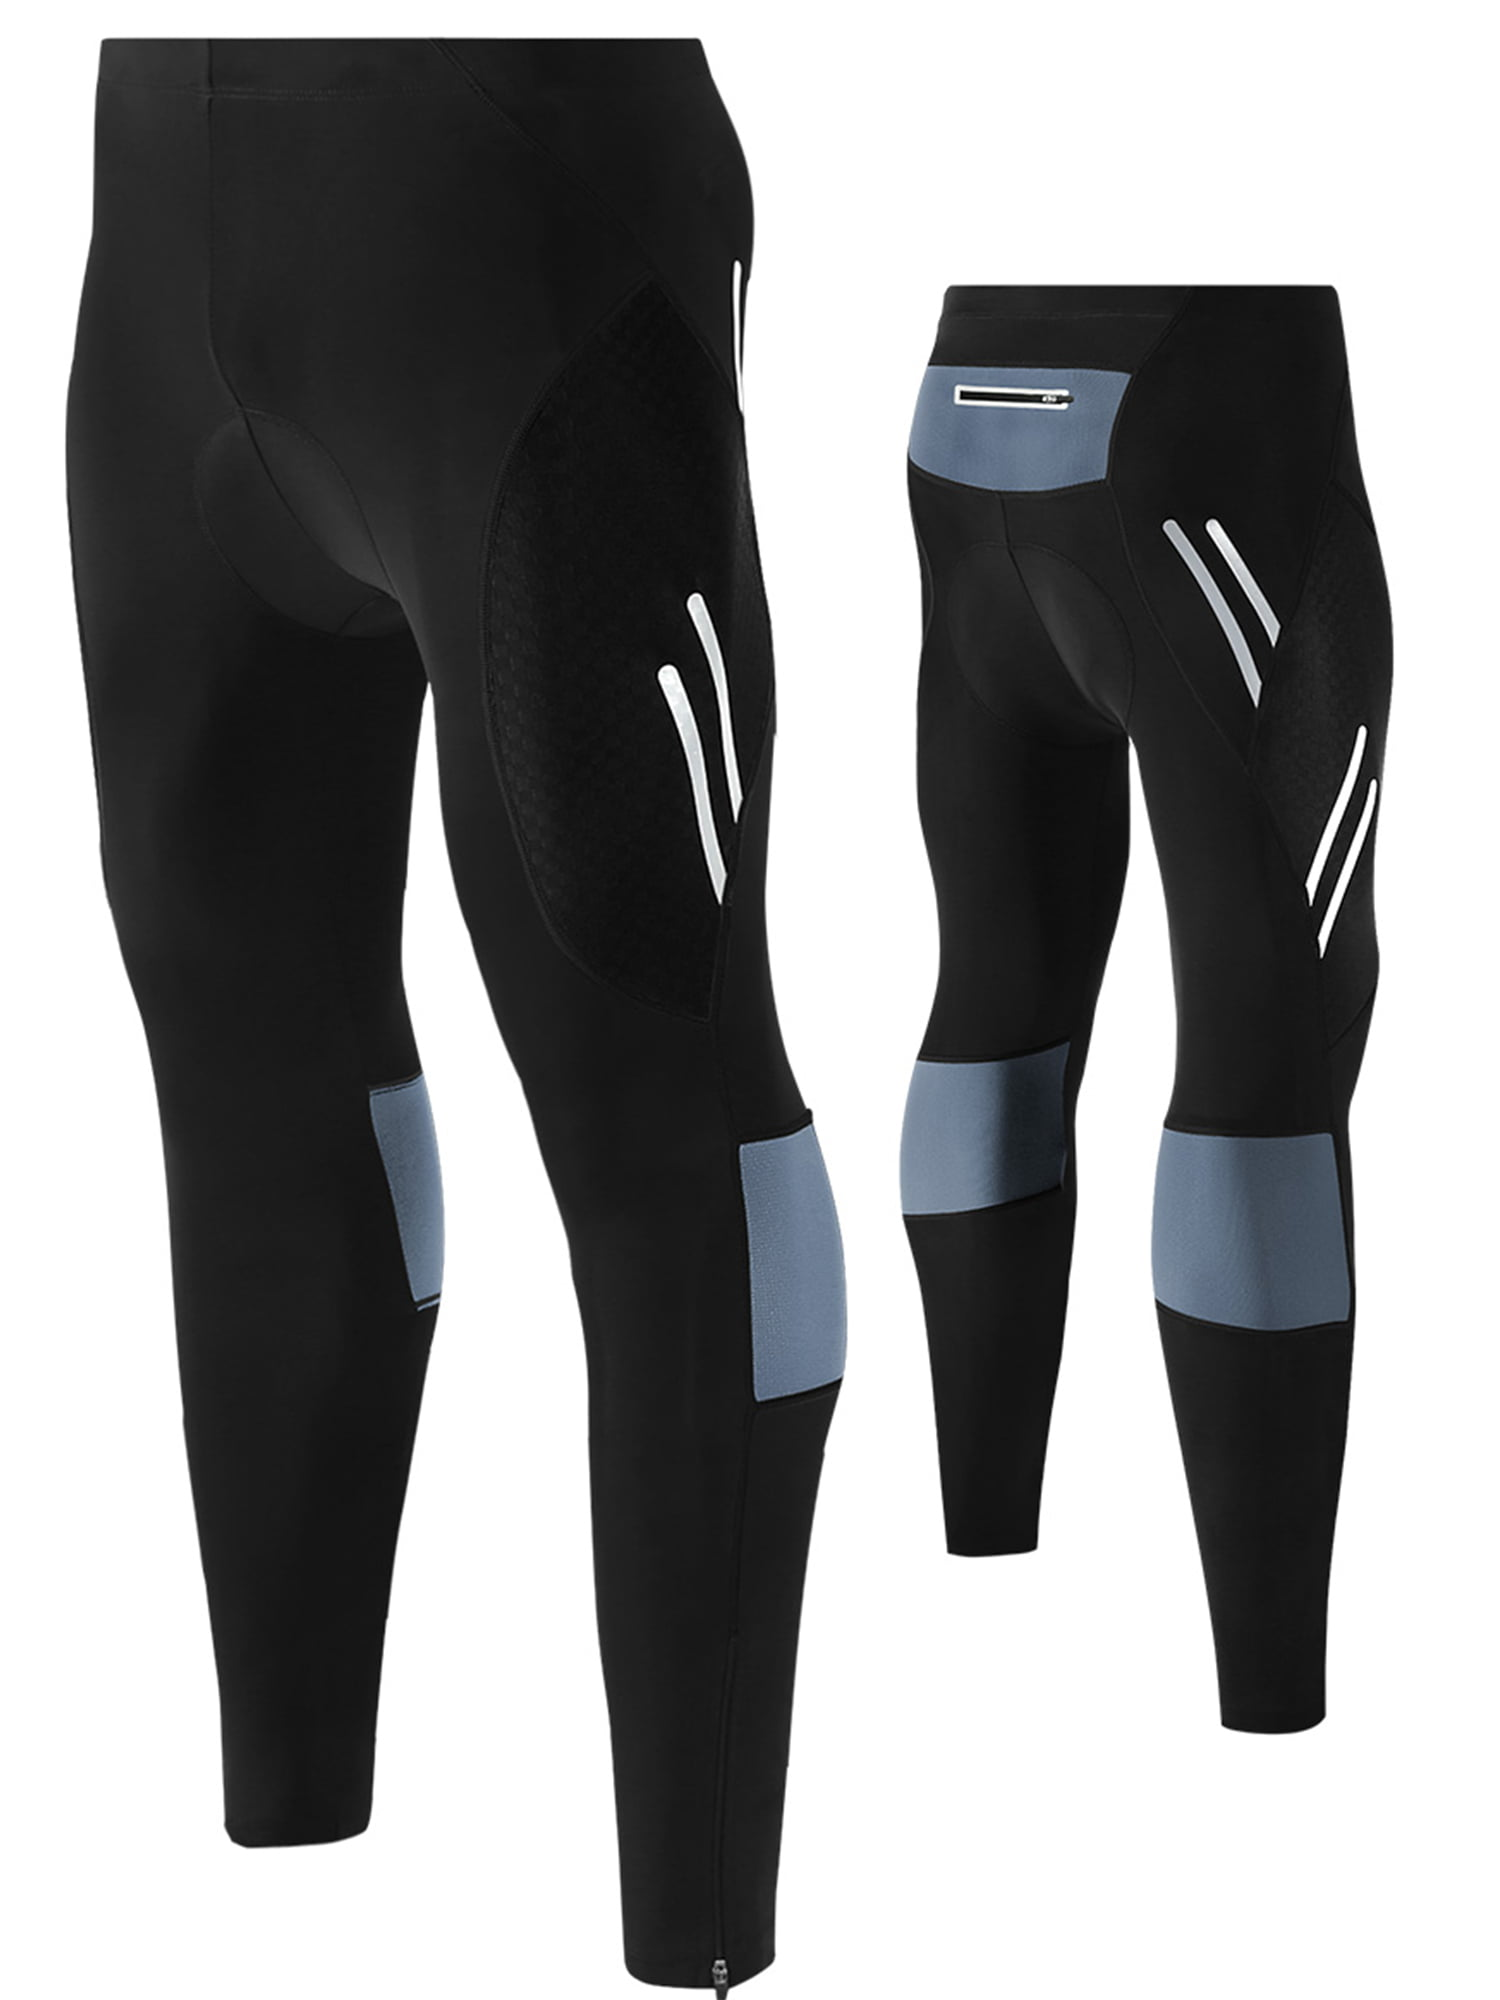 FEIXIANG Mens Cycling Tight Pants 4D Padded Bicycle Riding Compression Leggings Bike Clothes Cycle Wear Sport Tights